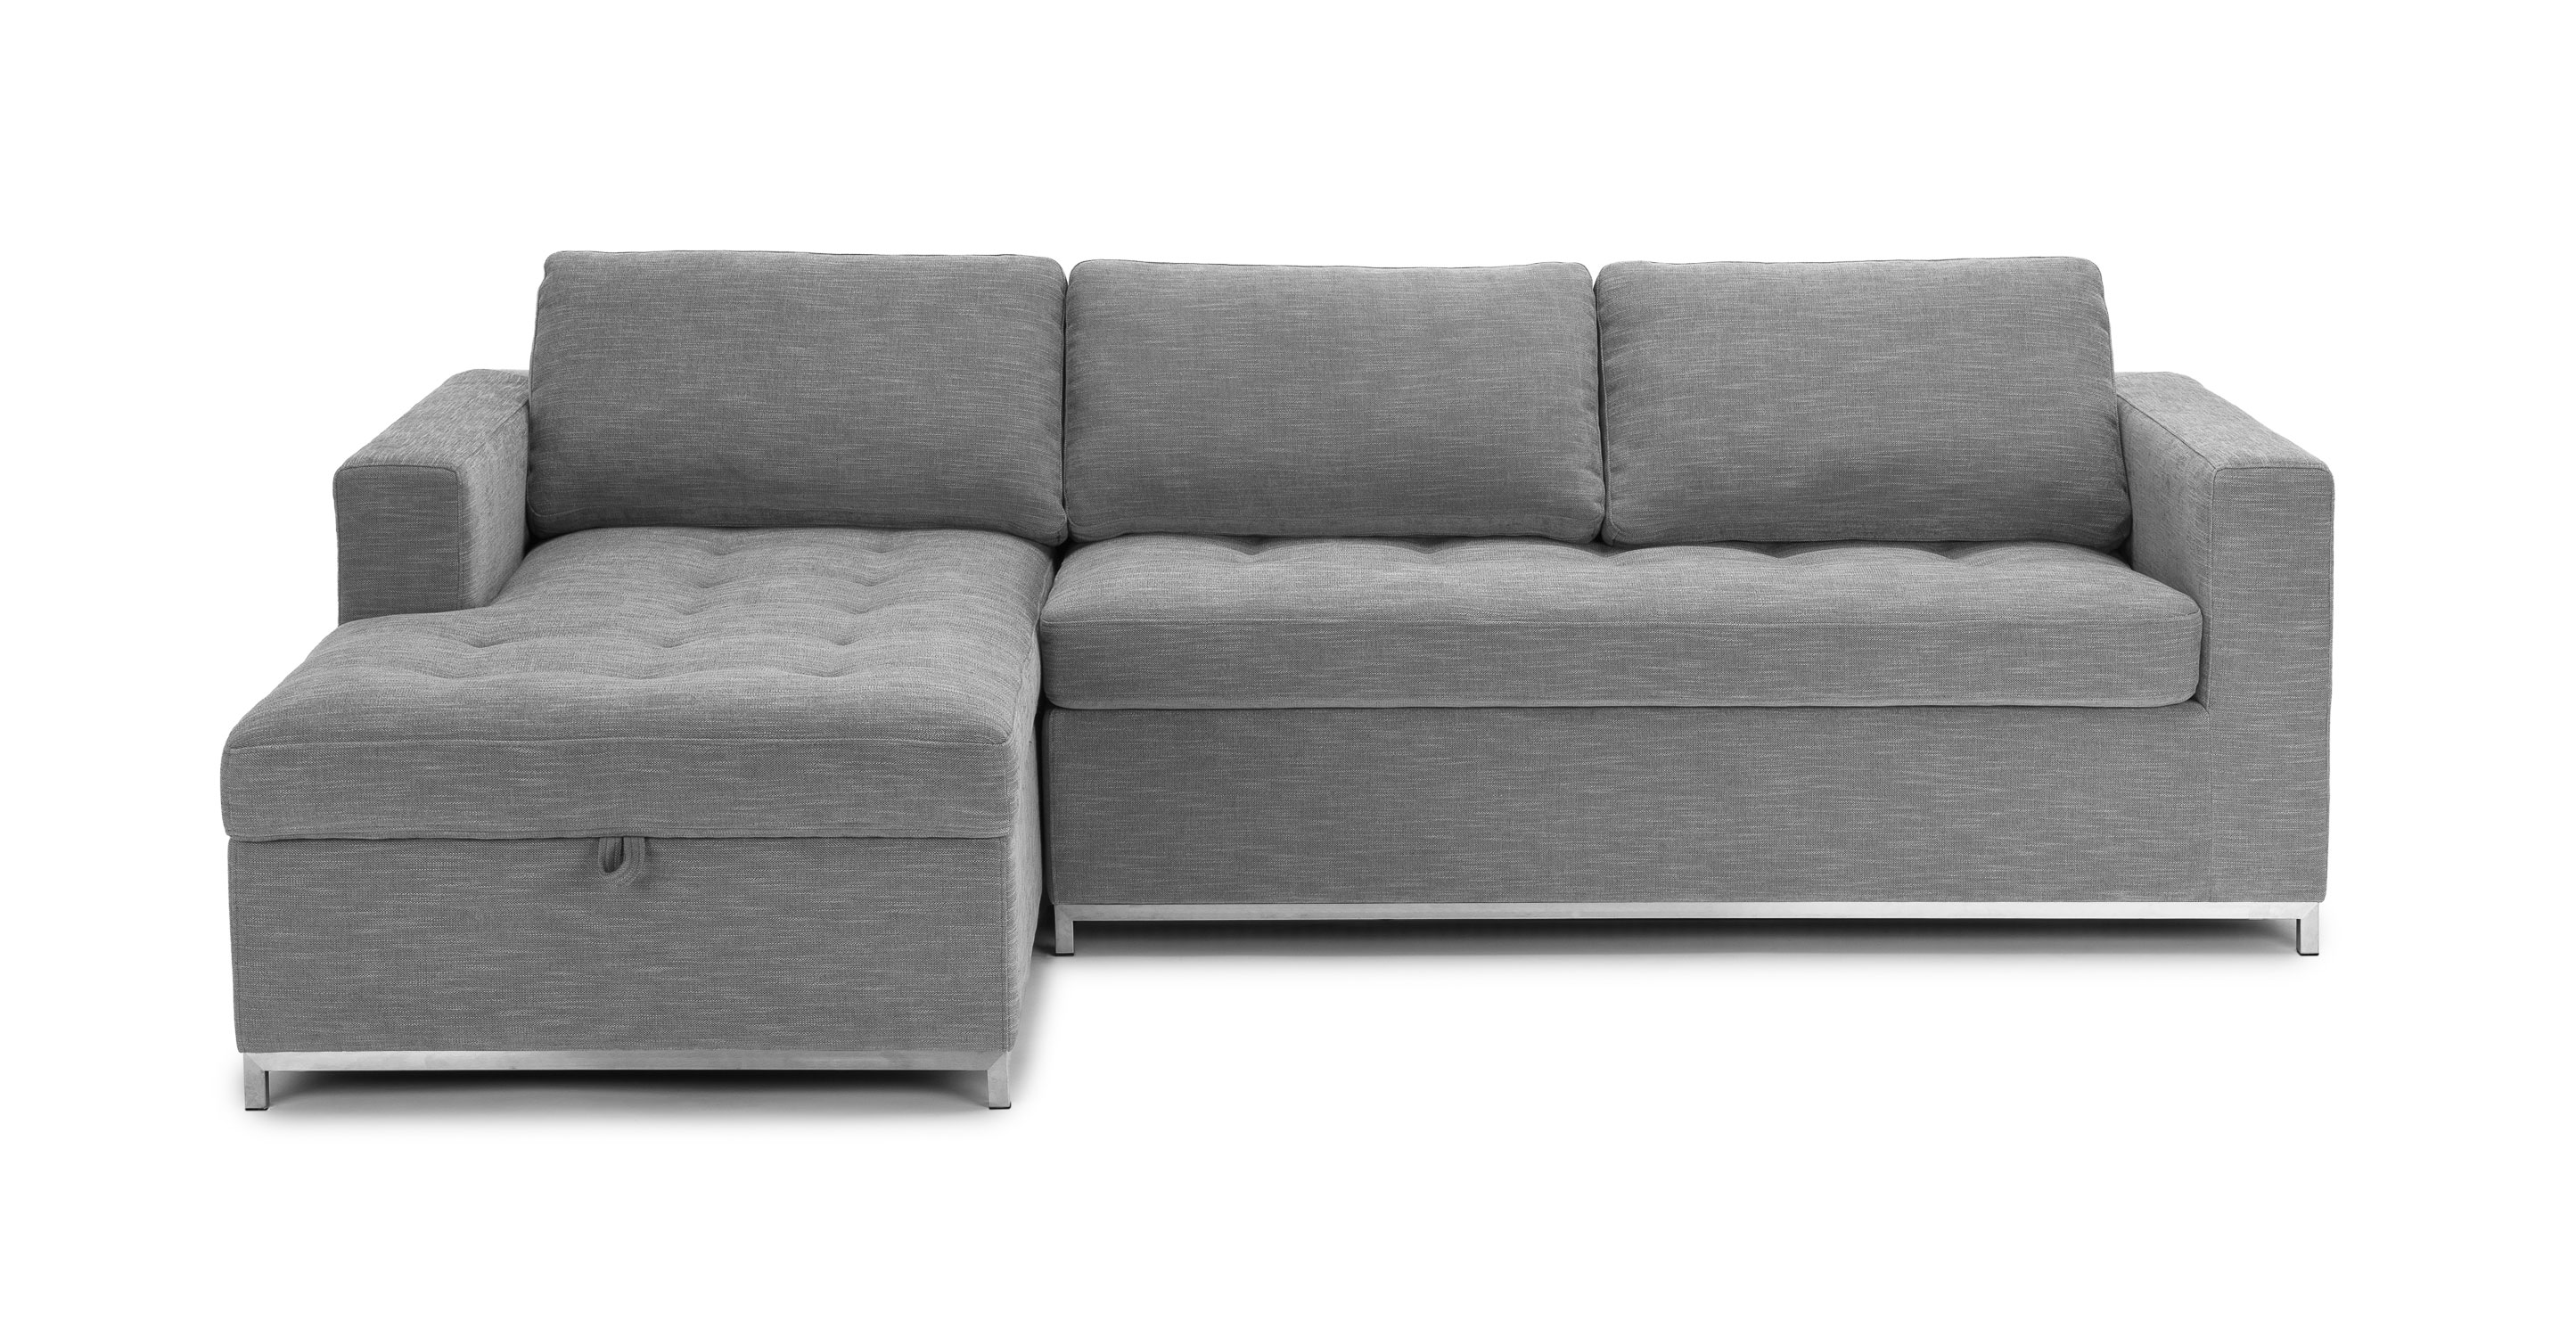 Couch With Bed In It Gray Sofa Bed Left Sectional Metal Legs Article Soma Modern Furniture